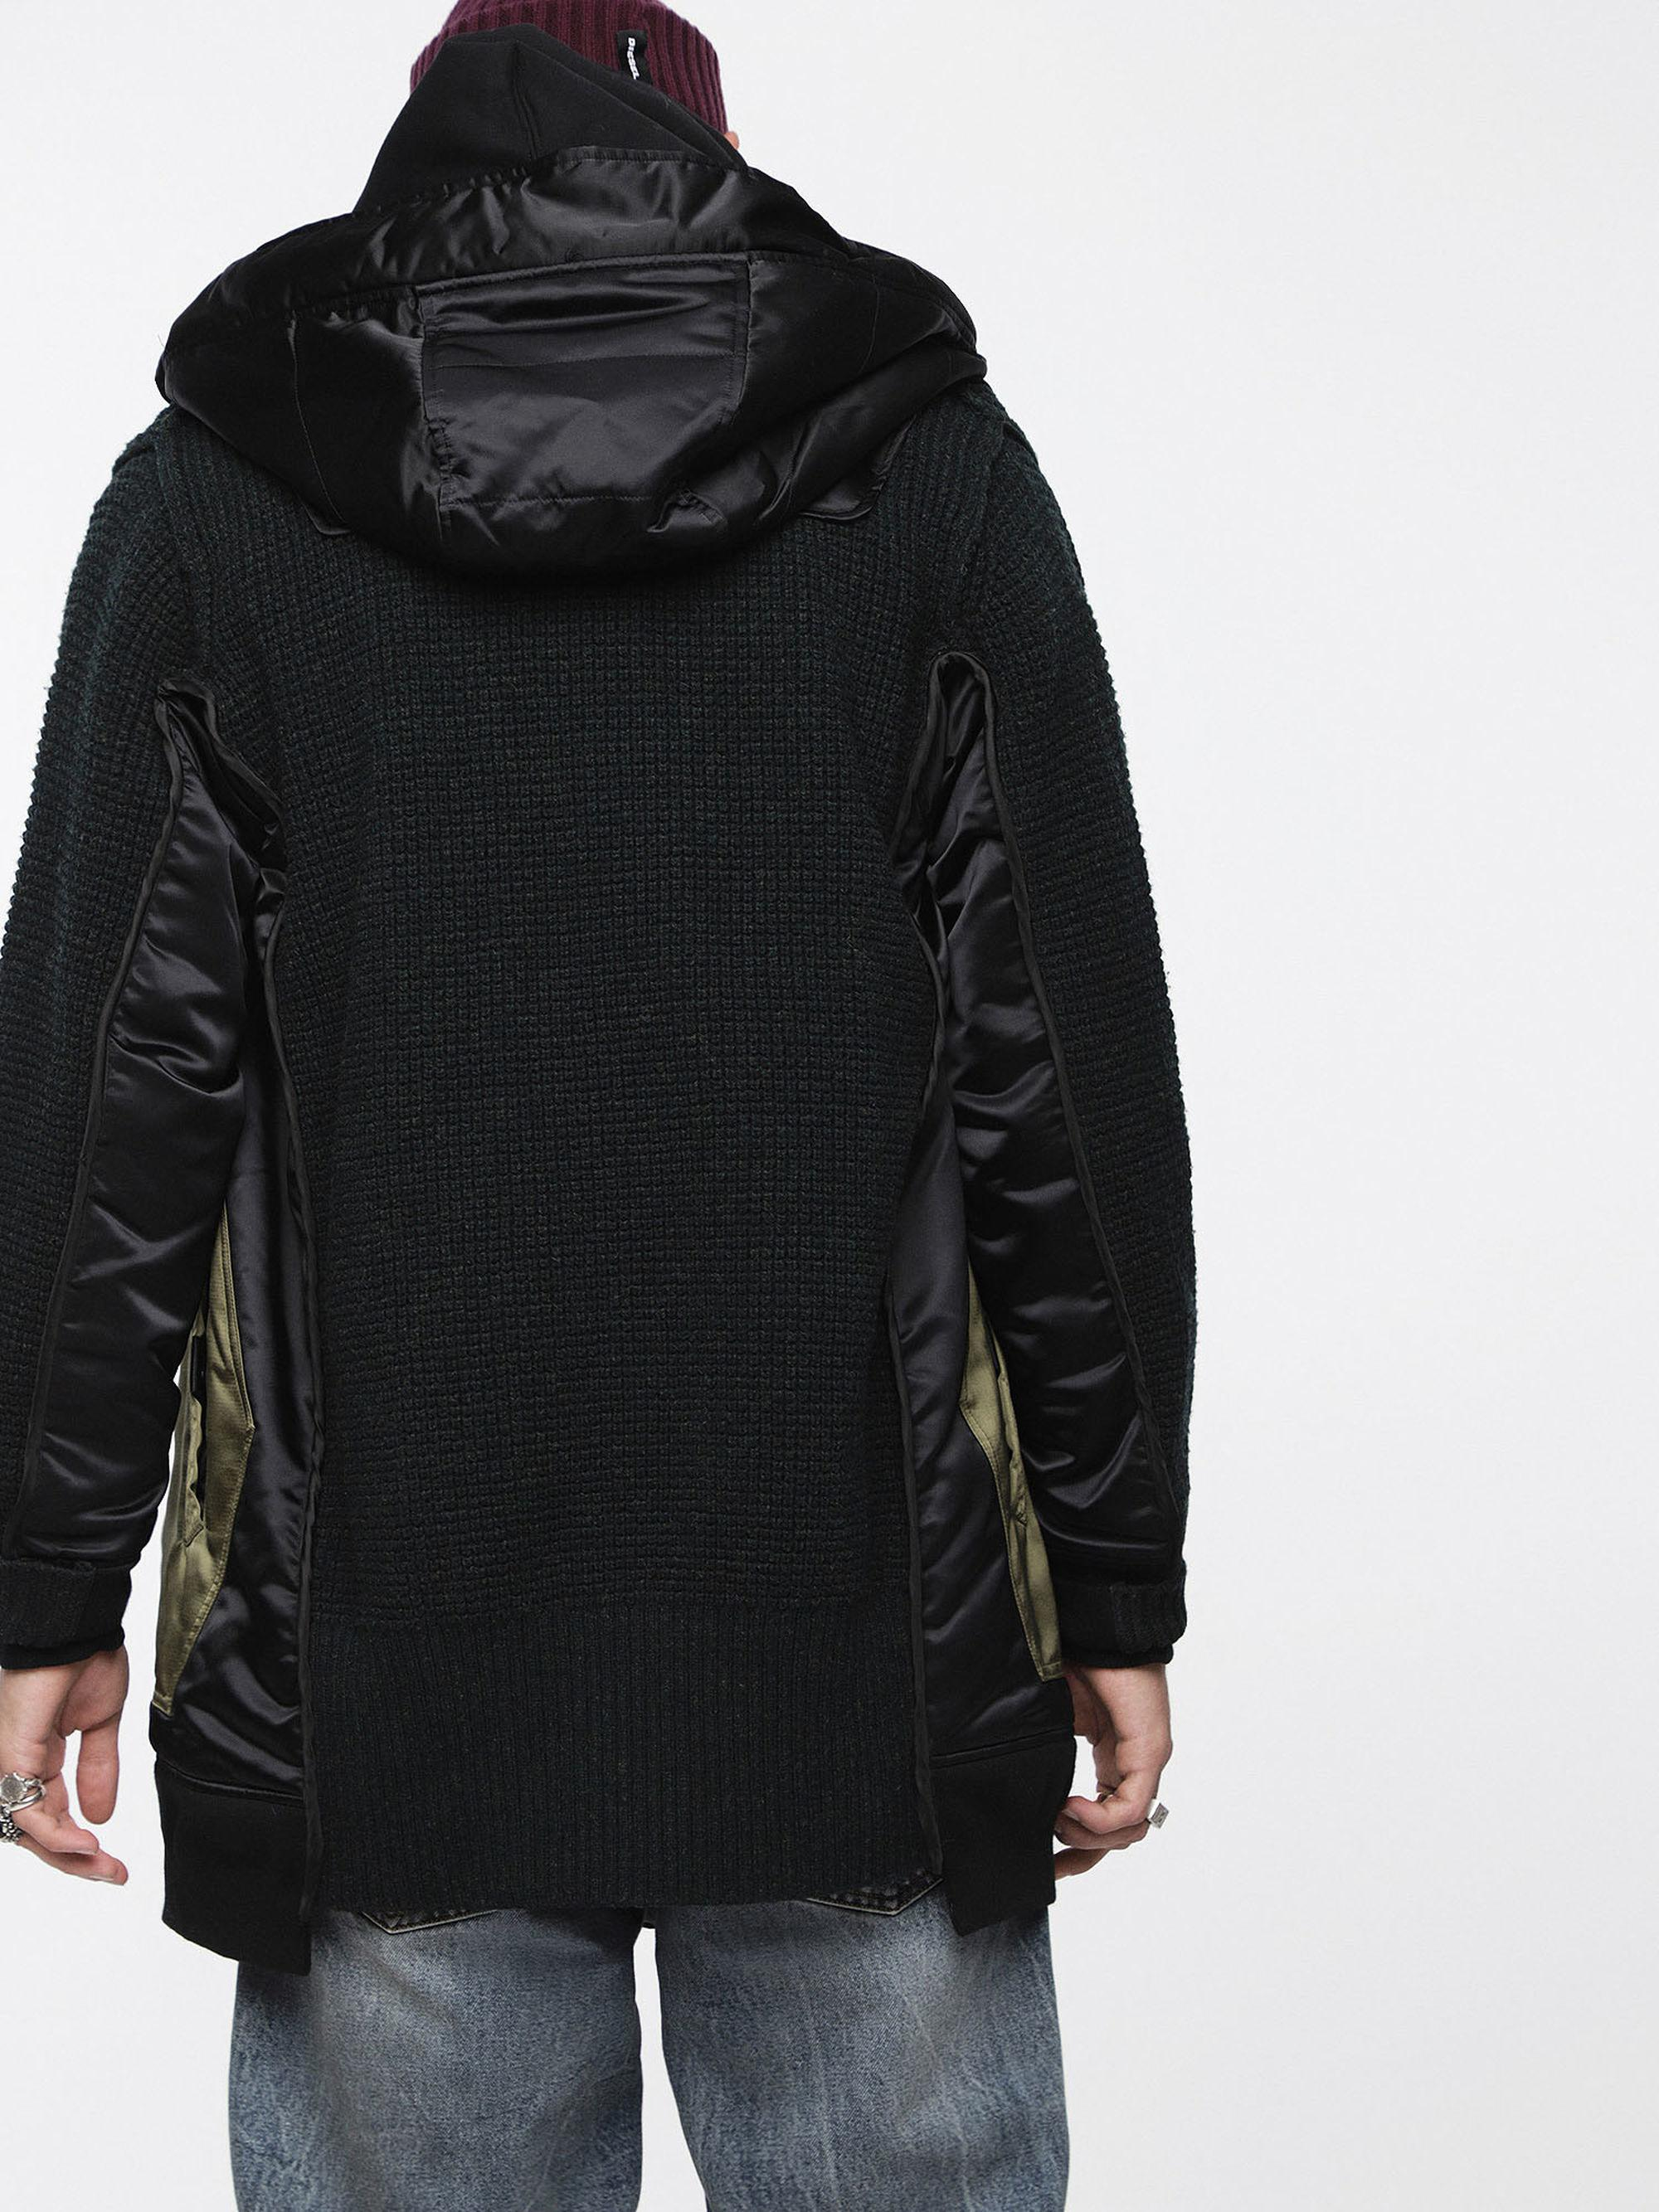 K-LIF JACKET (BLACK)